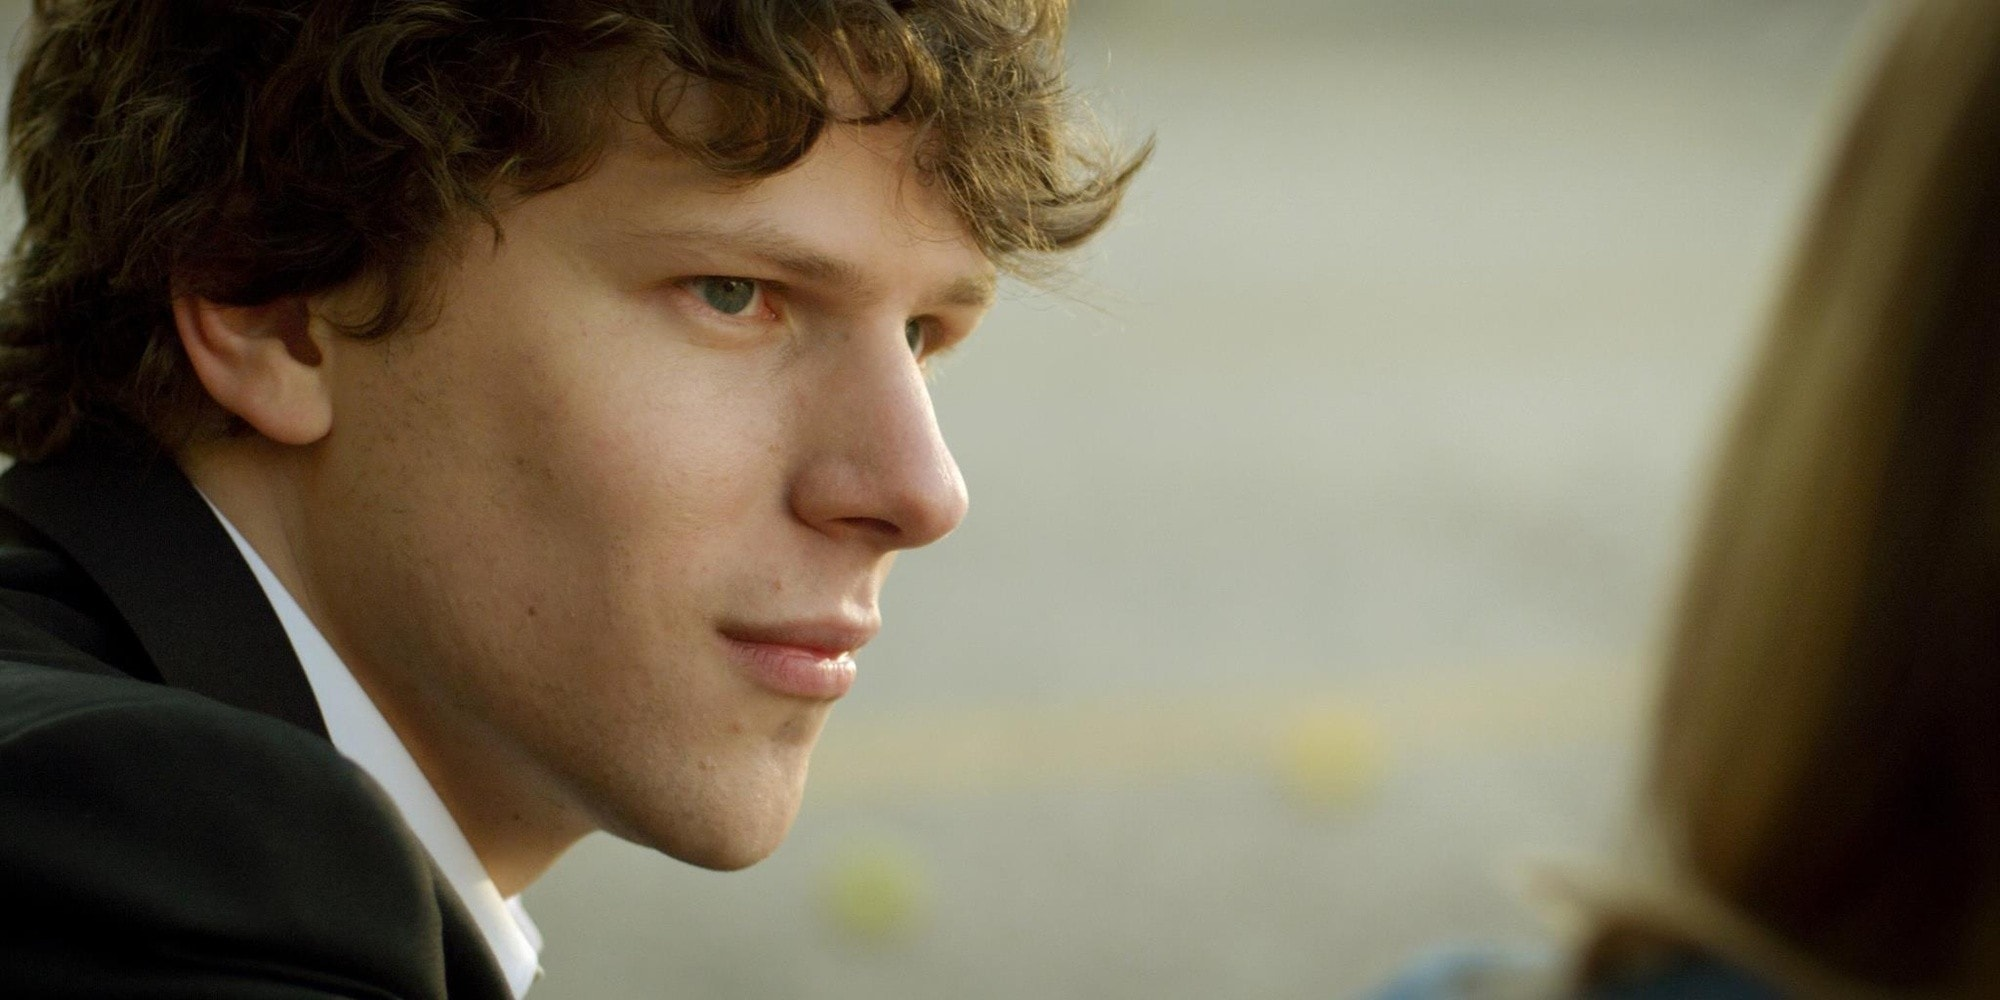 Jesse Eisenberg Wallpapers hd